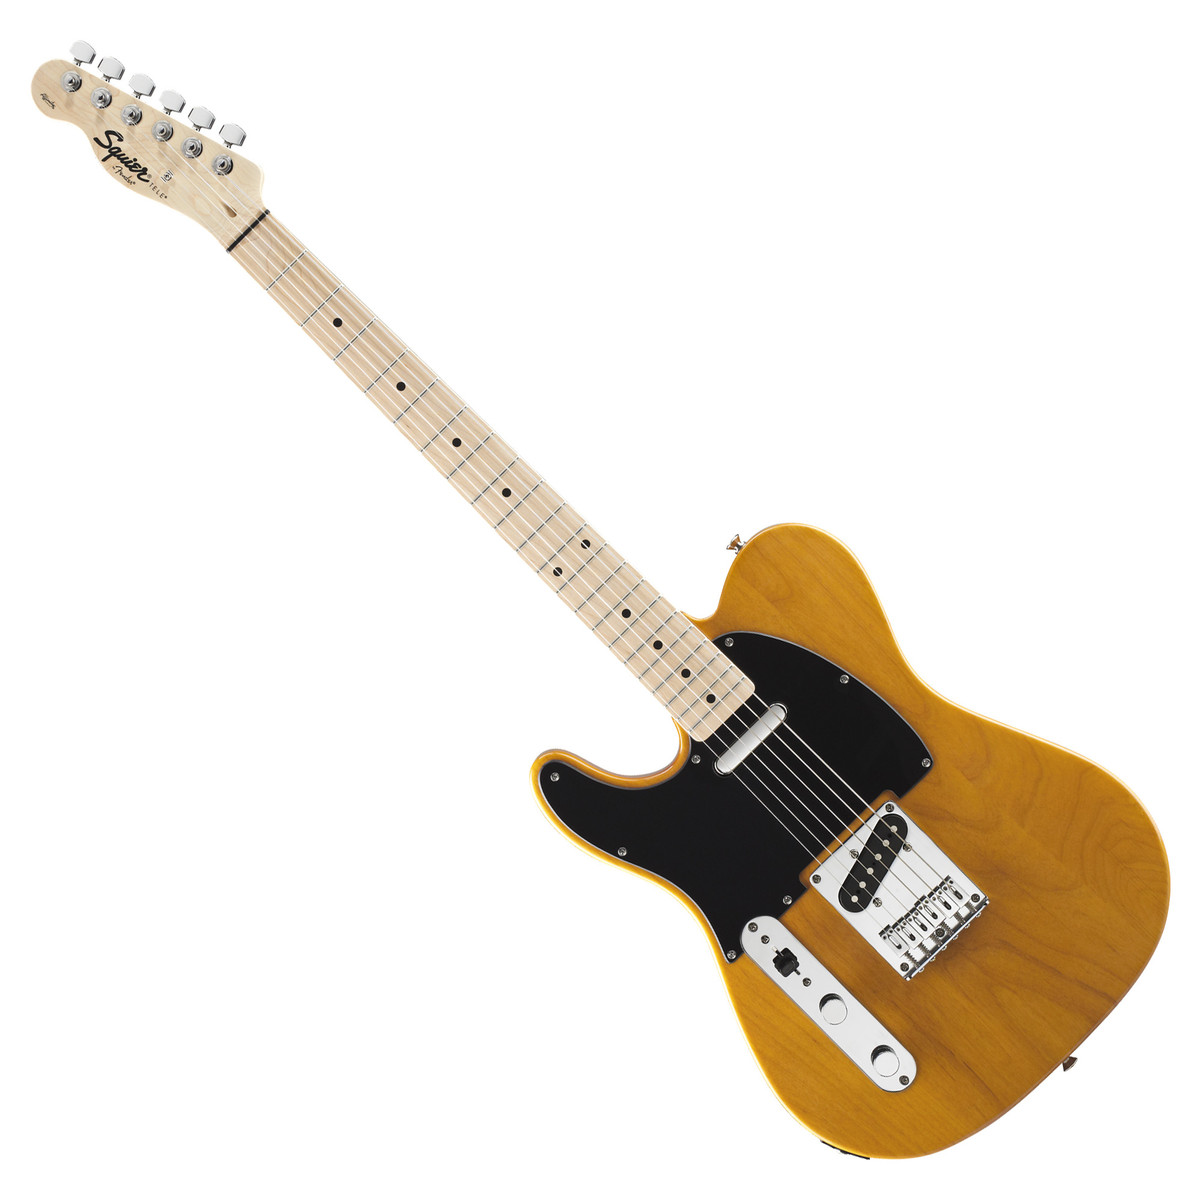 Squier Affinity Series Telecaster - Butterscotch Blonde left hand